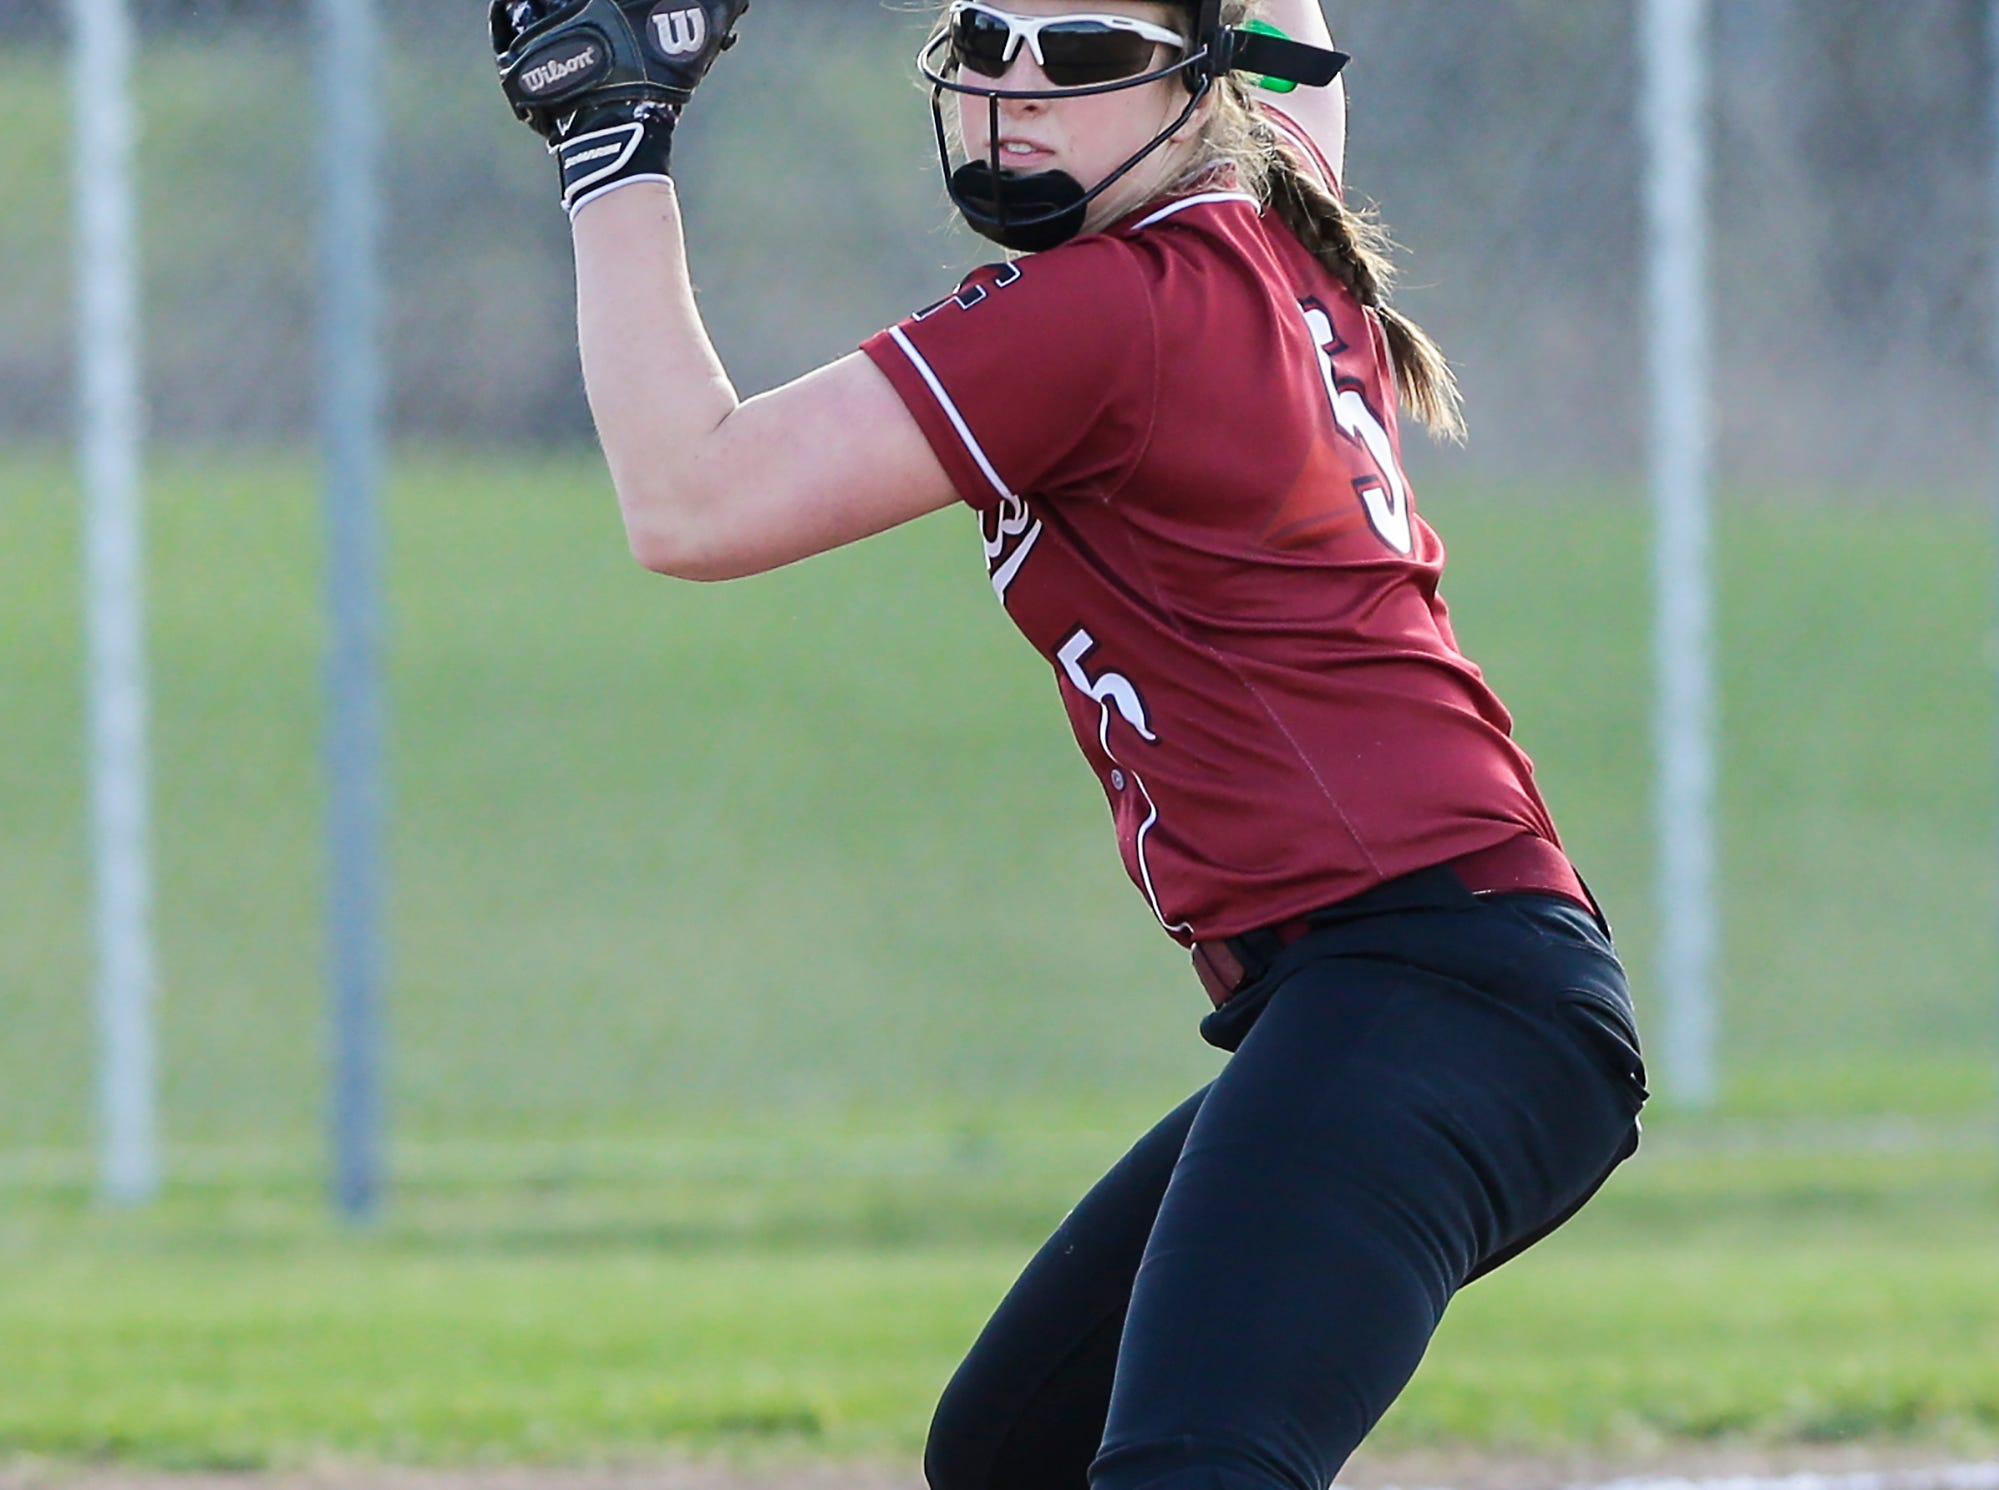 Fond du Lac High School softball's Kellie Hierl fields a ball against Oshkosh North High School during their game Friday, April 26, 2019 in Fond du Lac, Wis. Doug Raflik/USA TODAY NETWORK-Wisconsin